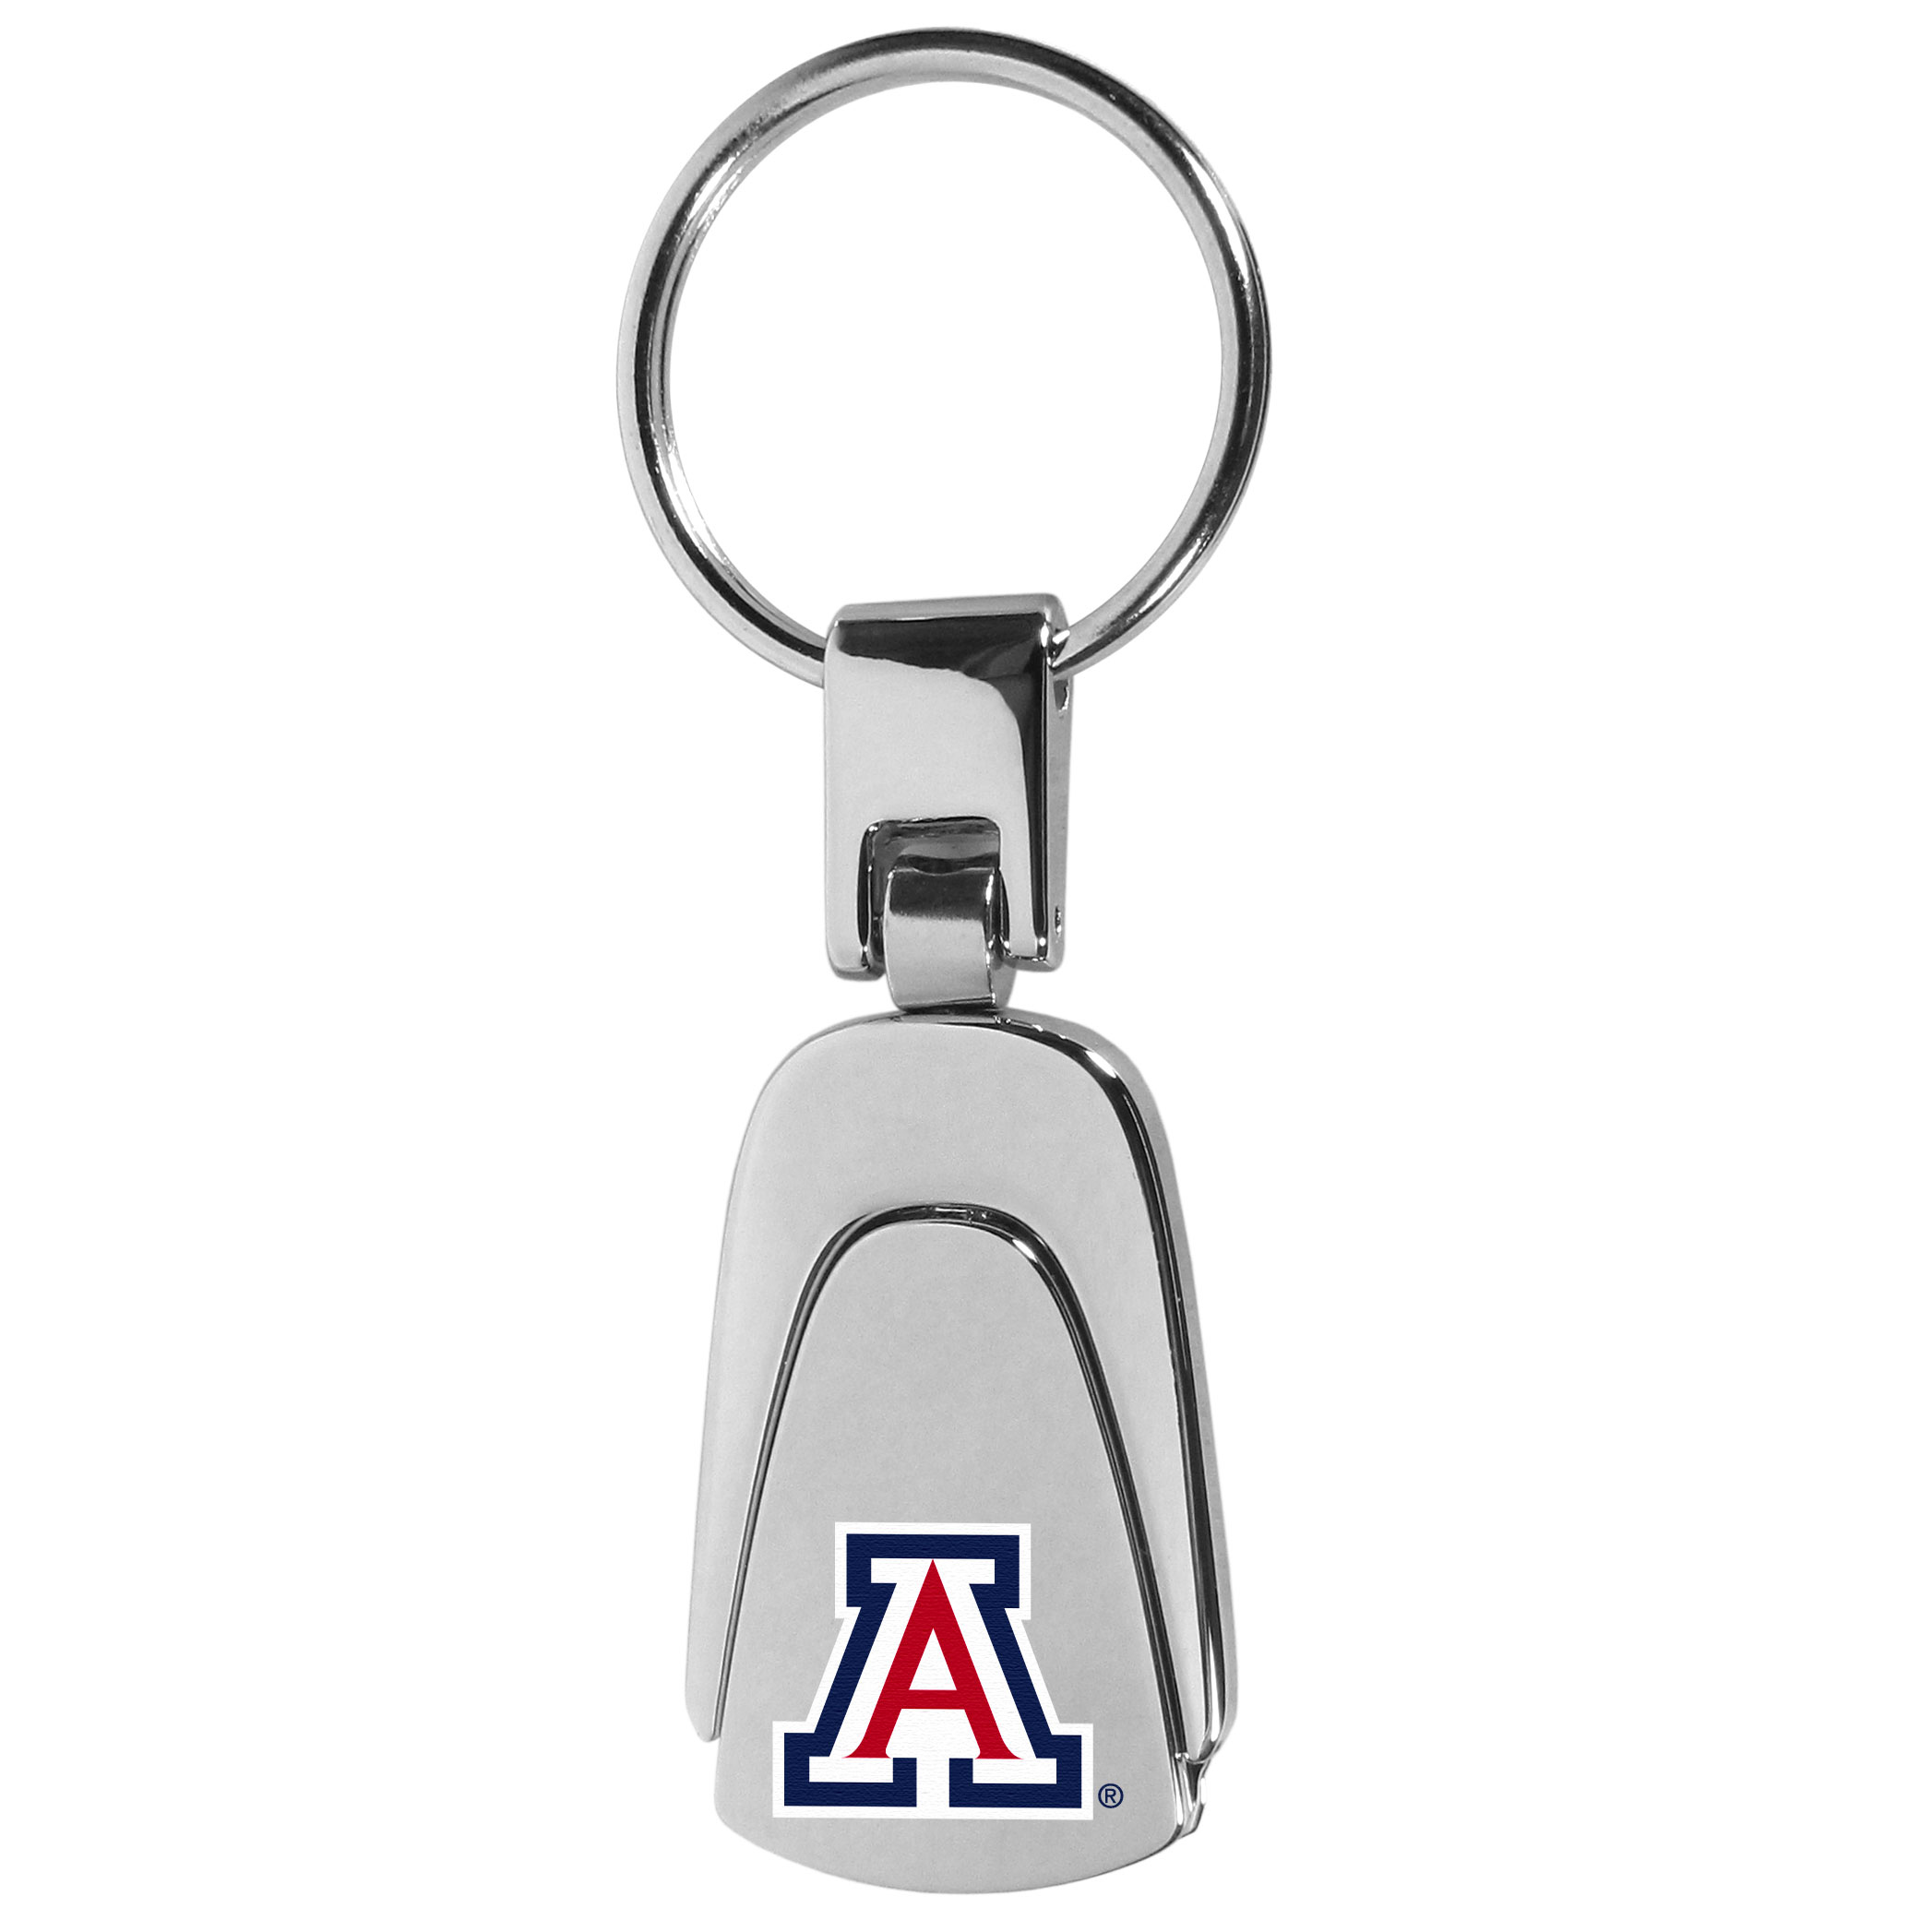 Arizona Wildcats Steel Teardop Key Chain - Our Arizona Wildcats stainless steel, teardrop key chain is a high-quality key chain with classic style. The key chain a high-polish finish with a full color team logo. A standard split ring for your home and auto keys.